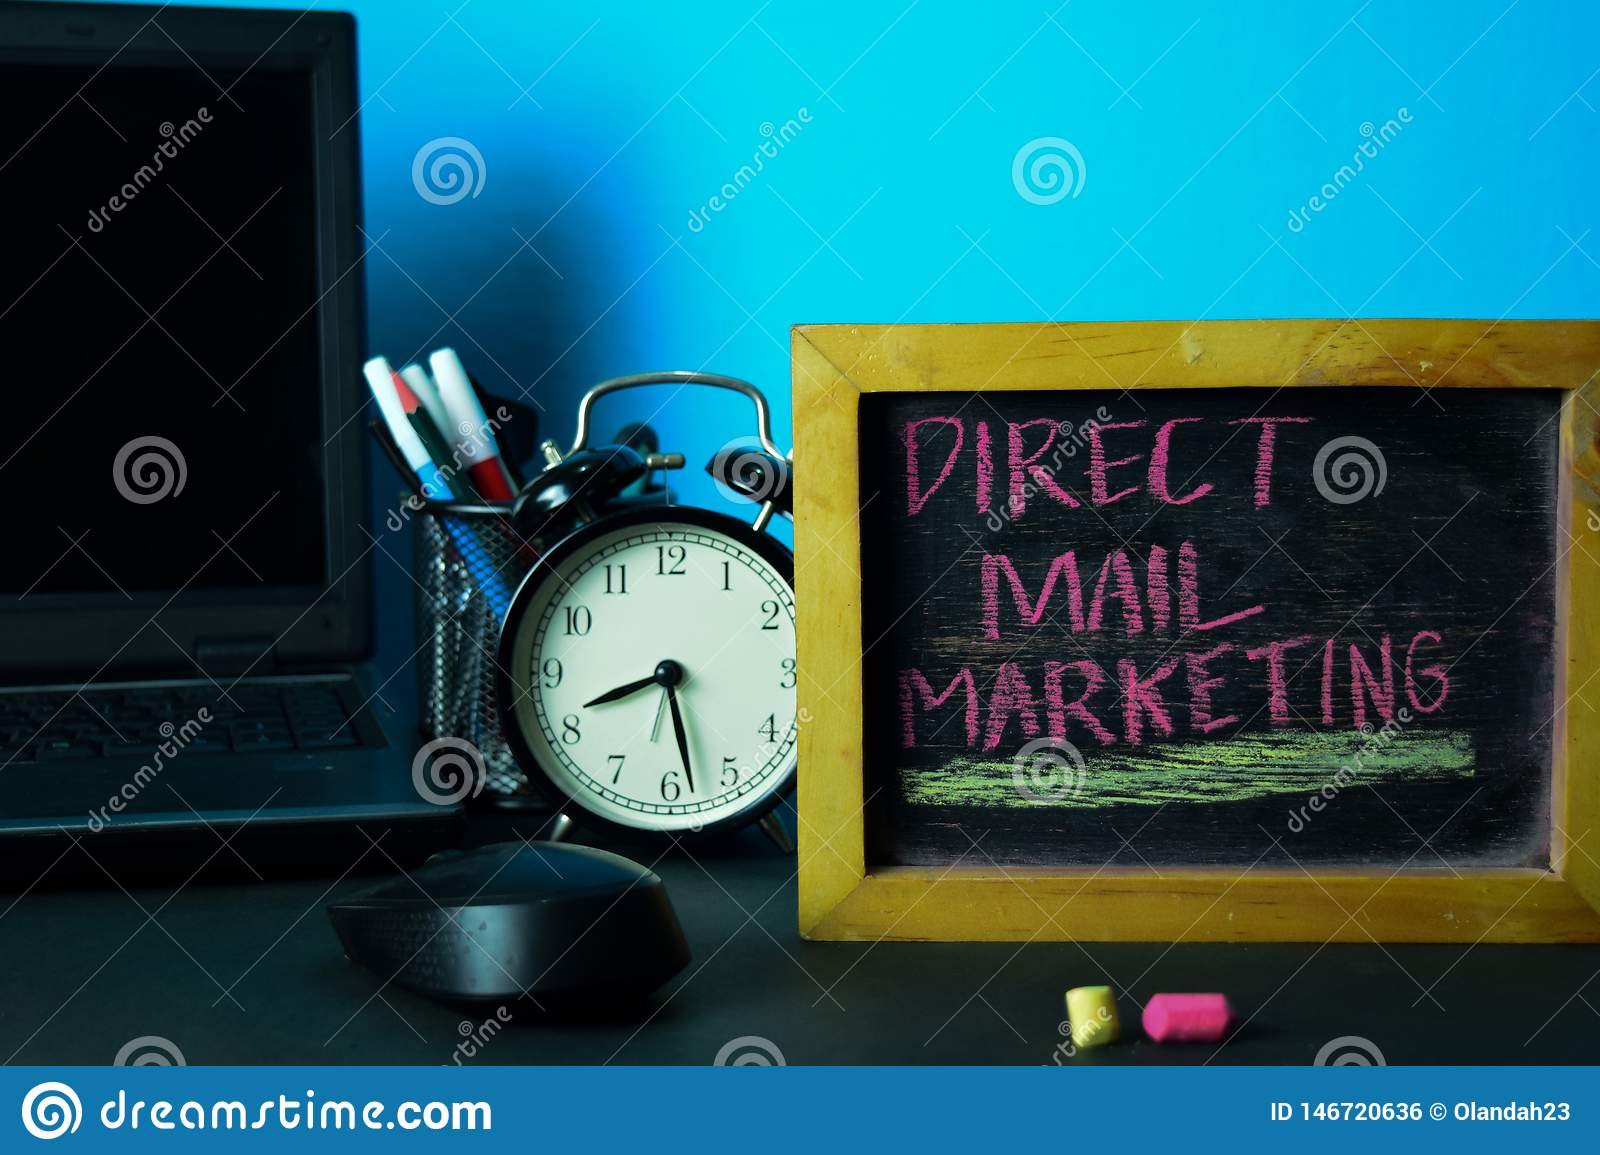 Direct Mail Marketing Planning on Background of Working Table with Office Supplies.